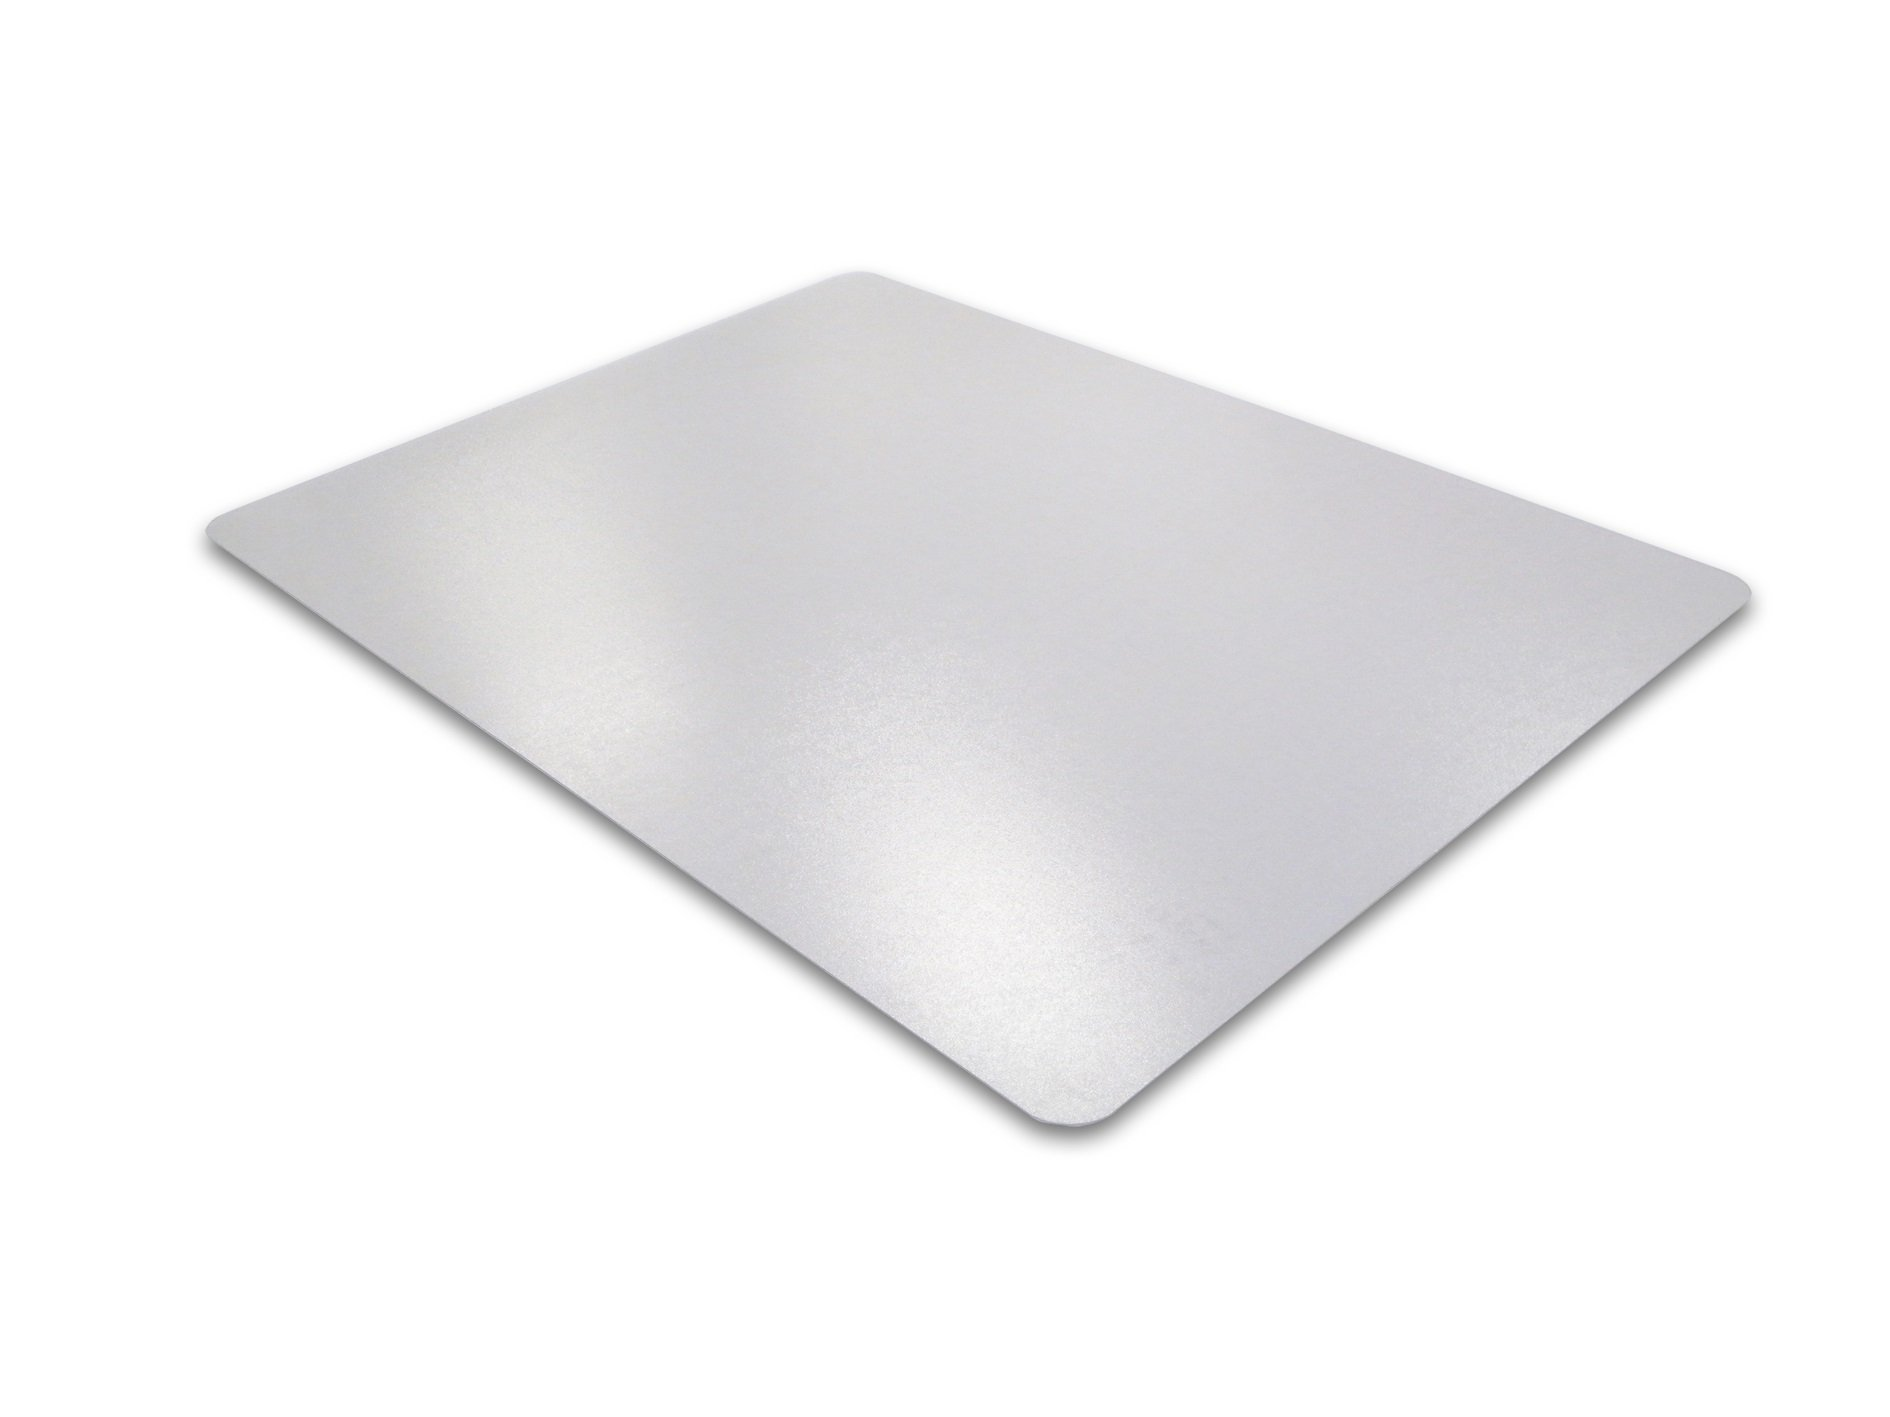 Desktex, Desk Protector Mat, Anti-Slip and Strong Polycarbonate, Rectangular, Clear, 29 x 59 Inches (FRDE2949RA)